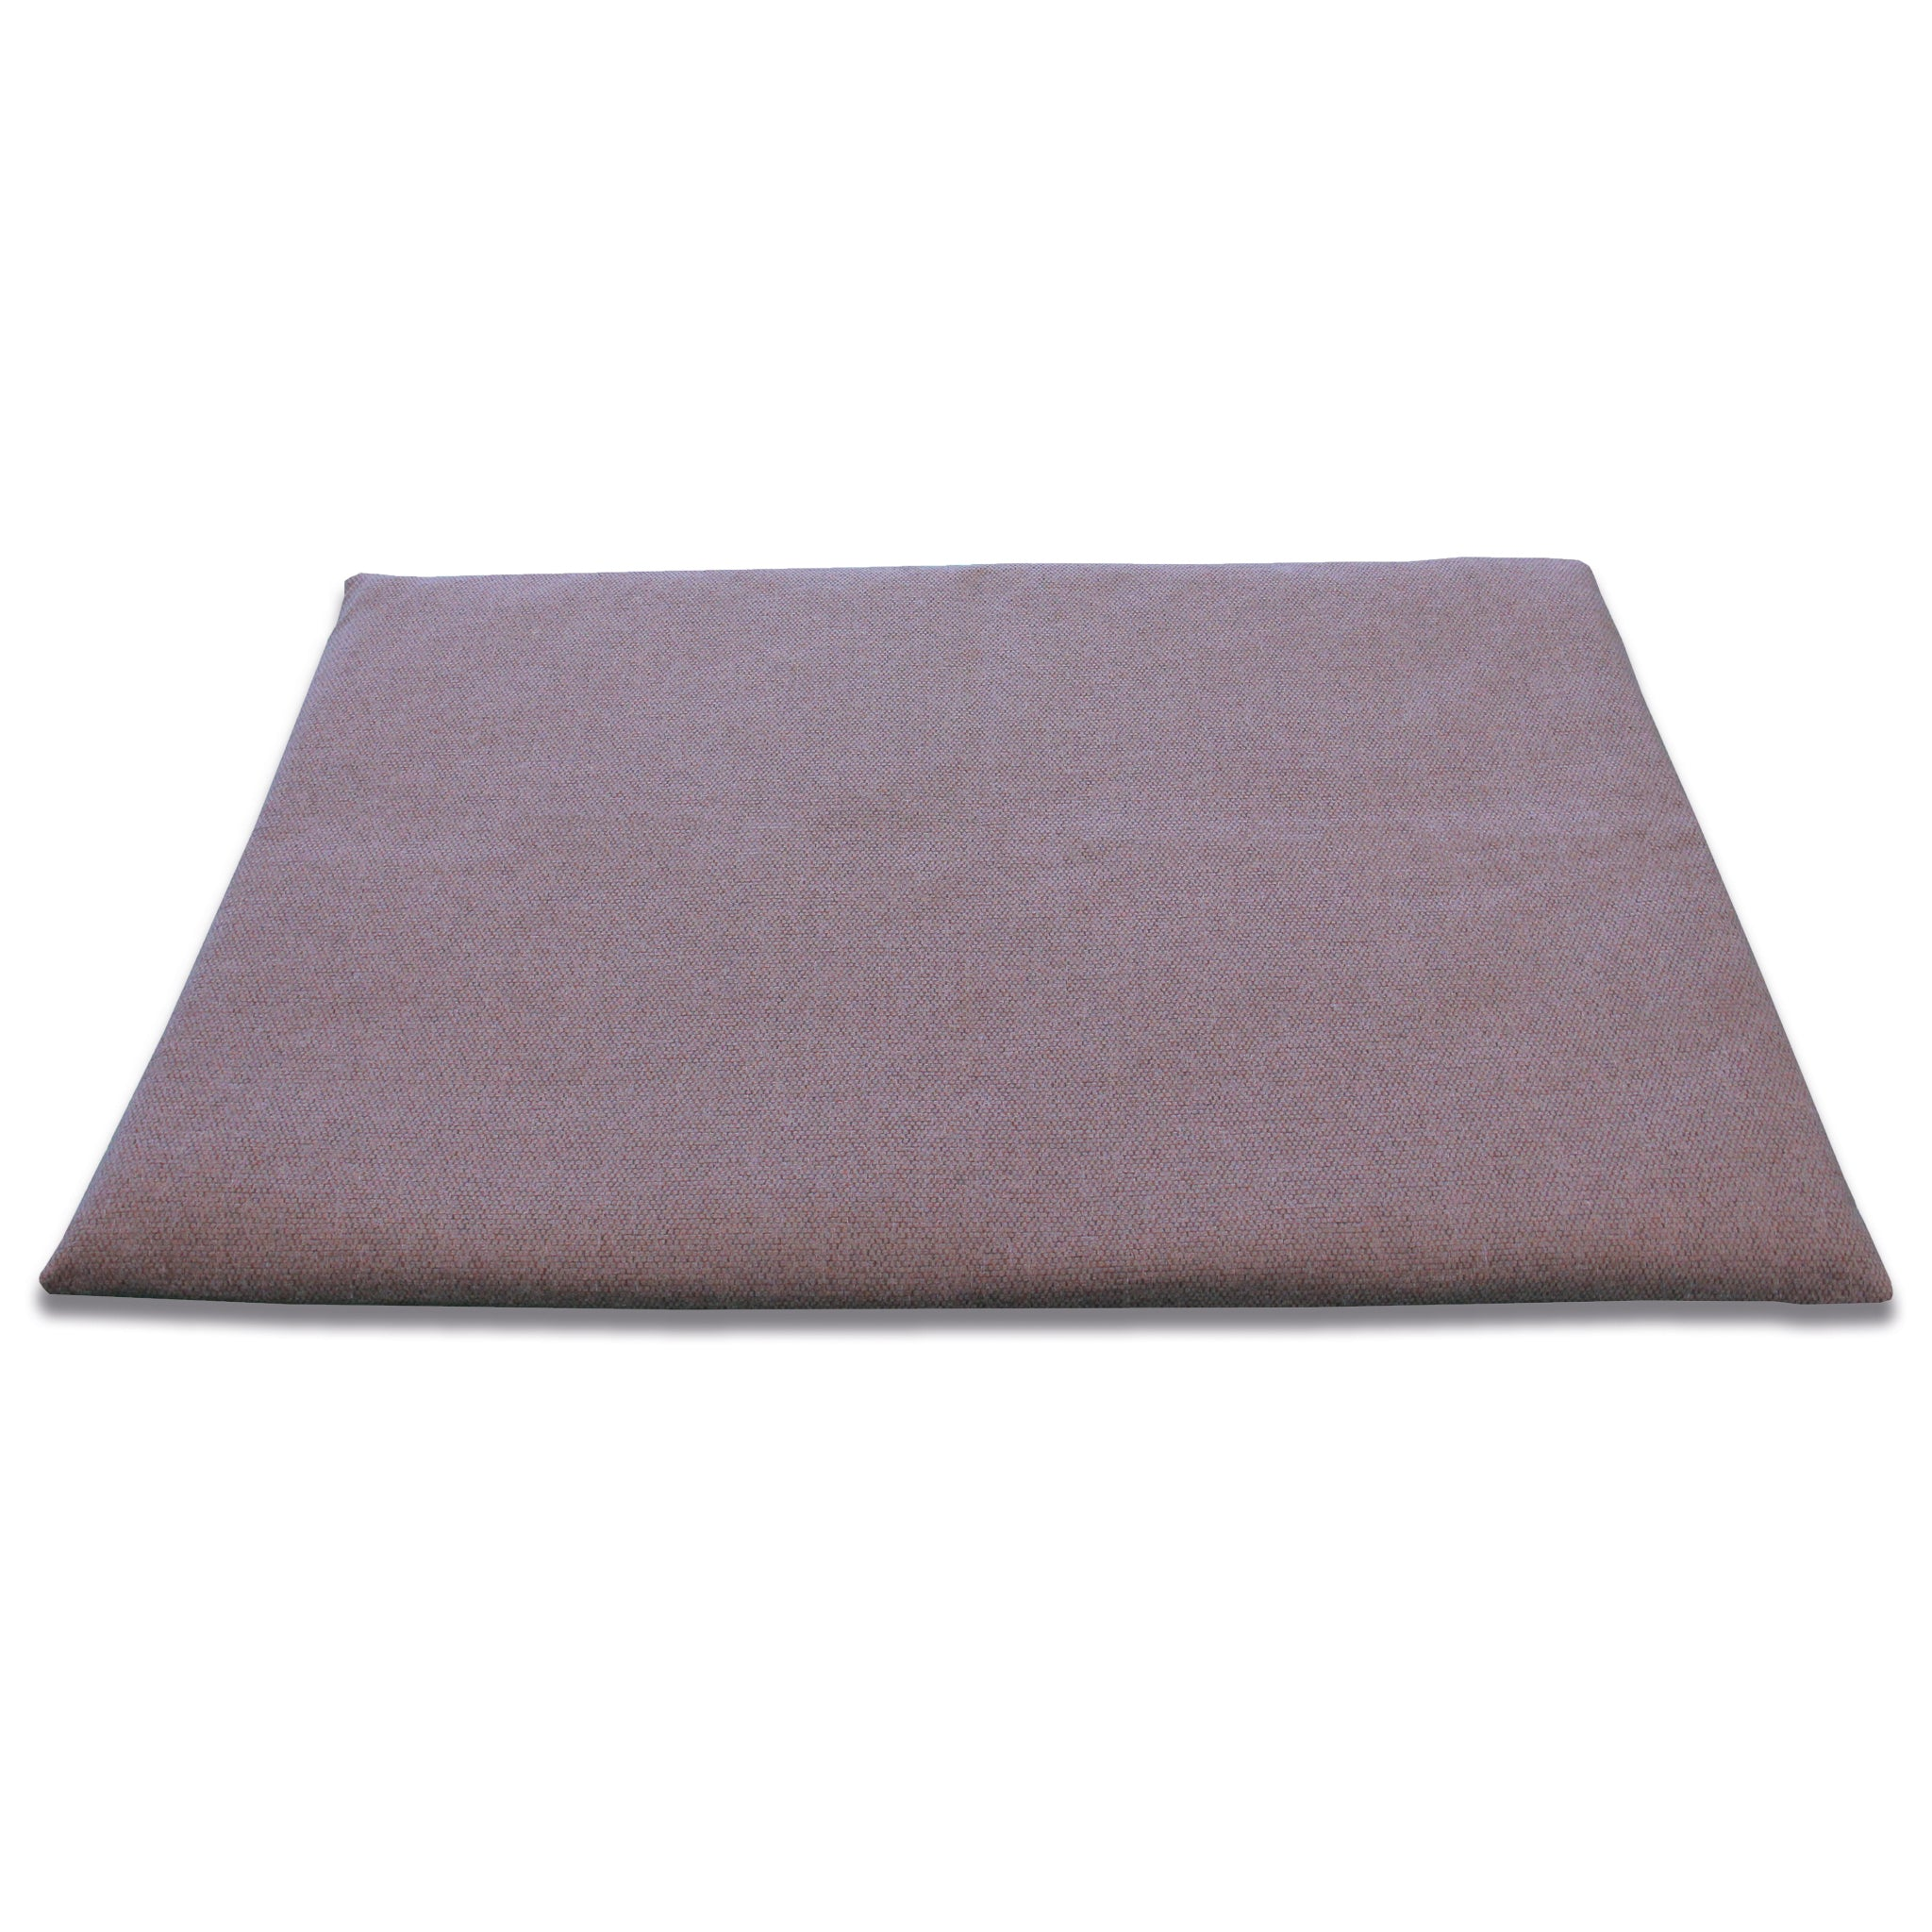 Benchmat - Cozy Easy Clean Roze